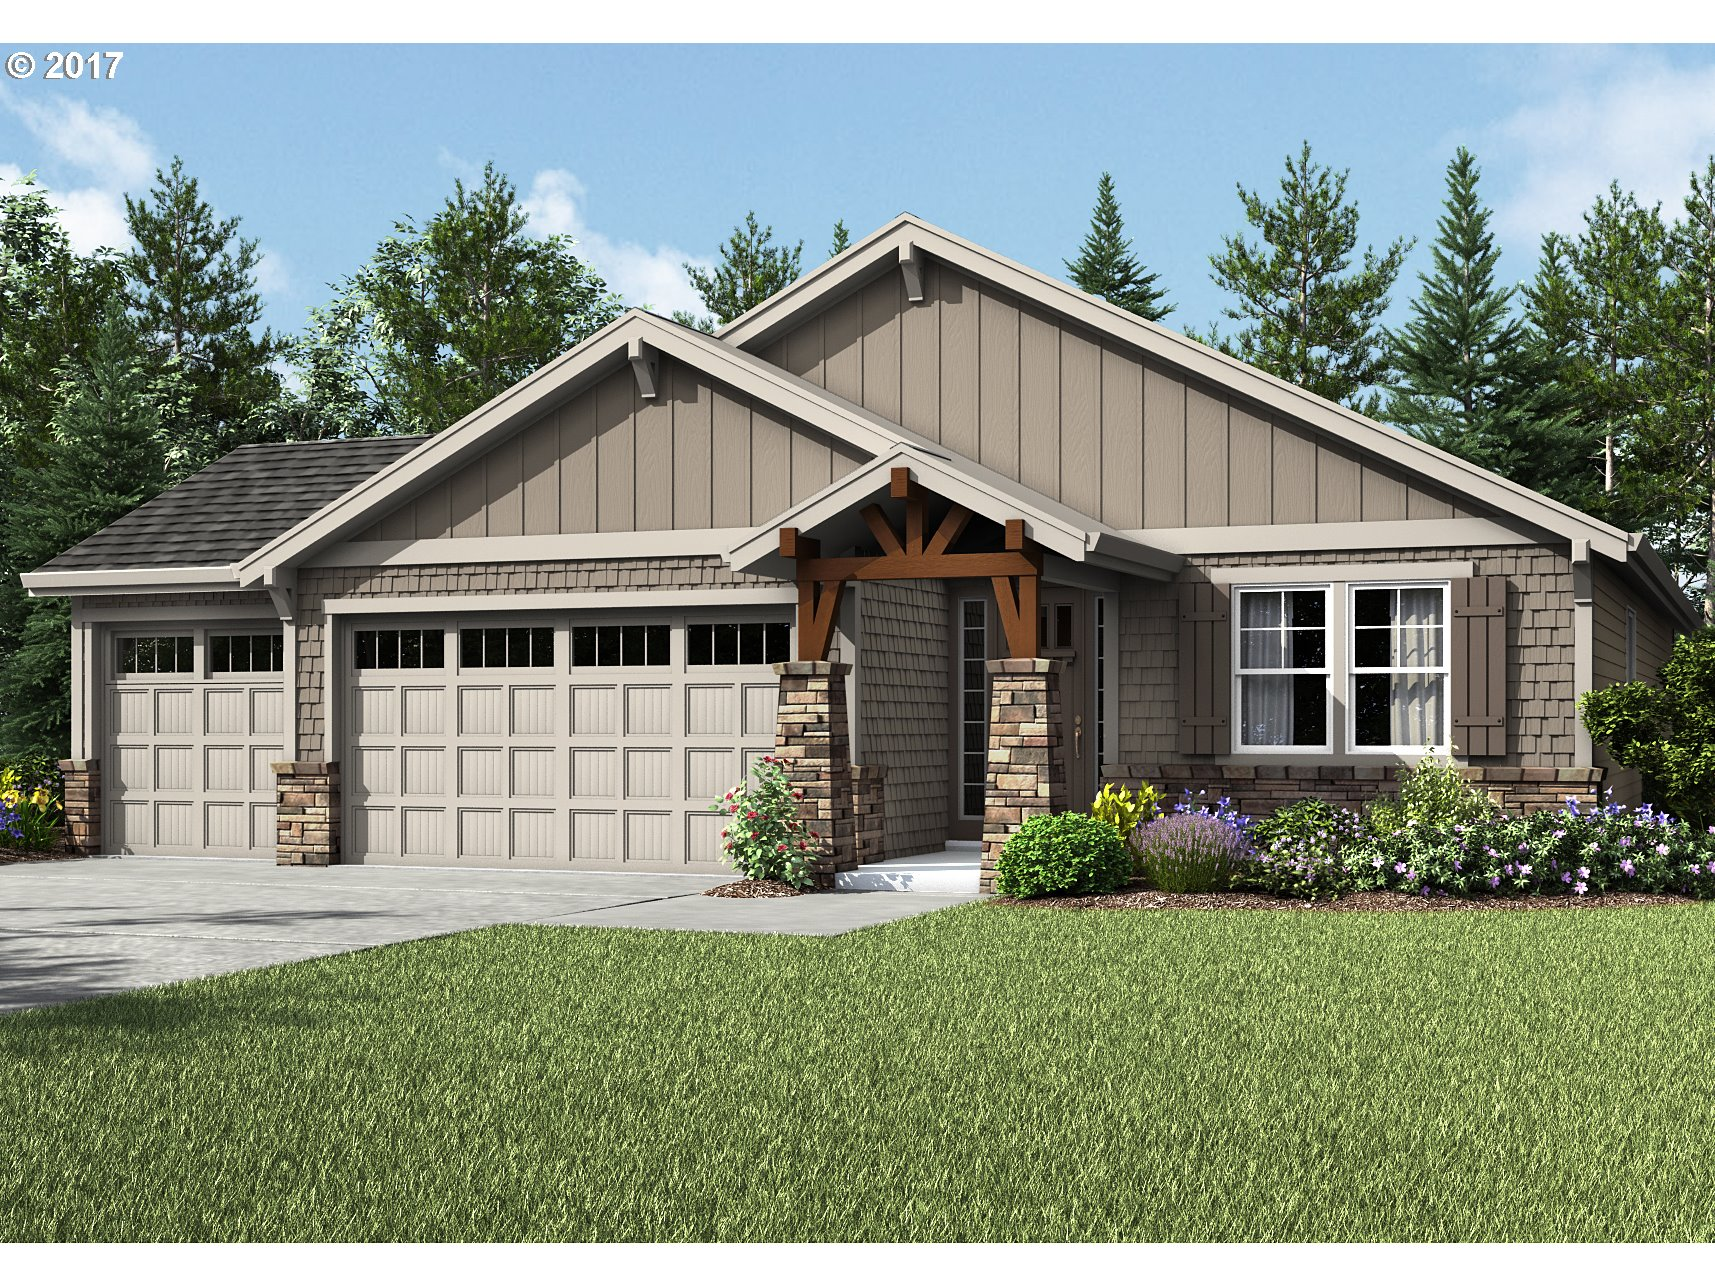 5105 NW 138TH ST Lot54, Vancouver, WA 98685